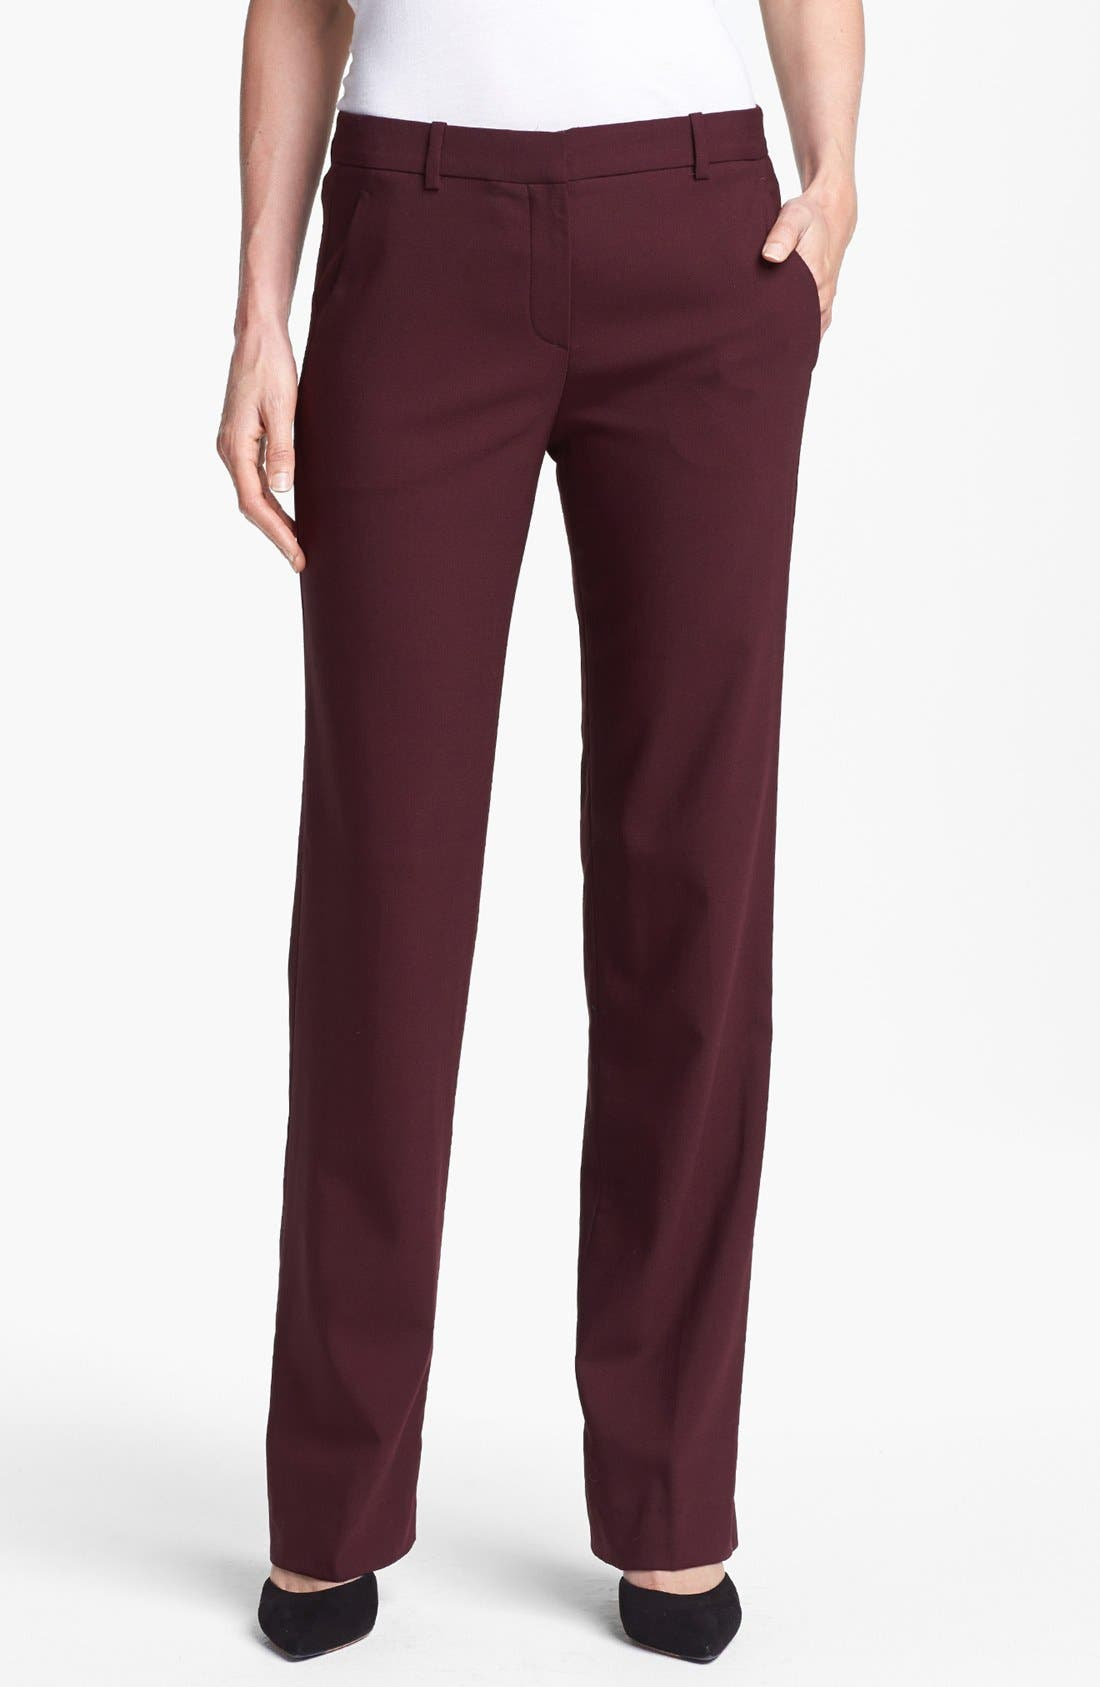 Alternate Image 1 Selected - Theory 'Avano' Stretch Wool Pants